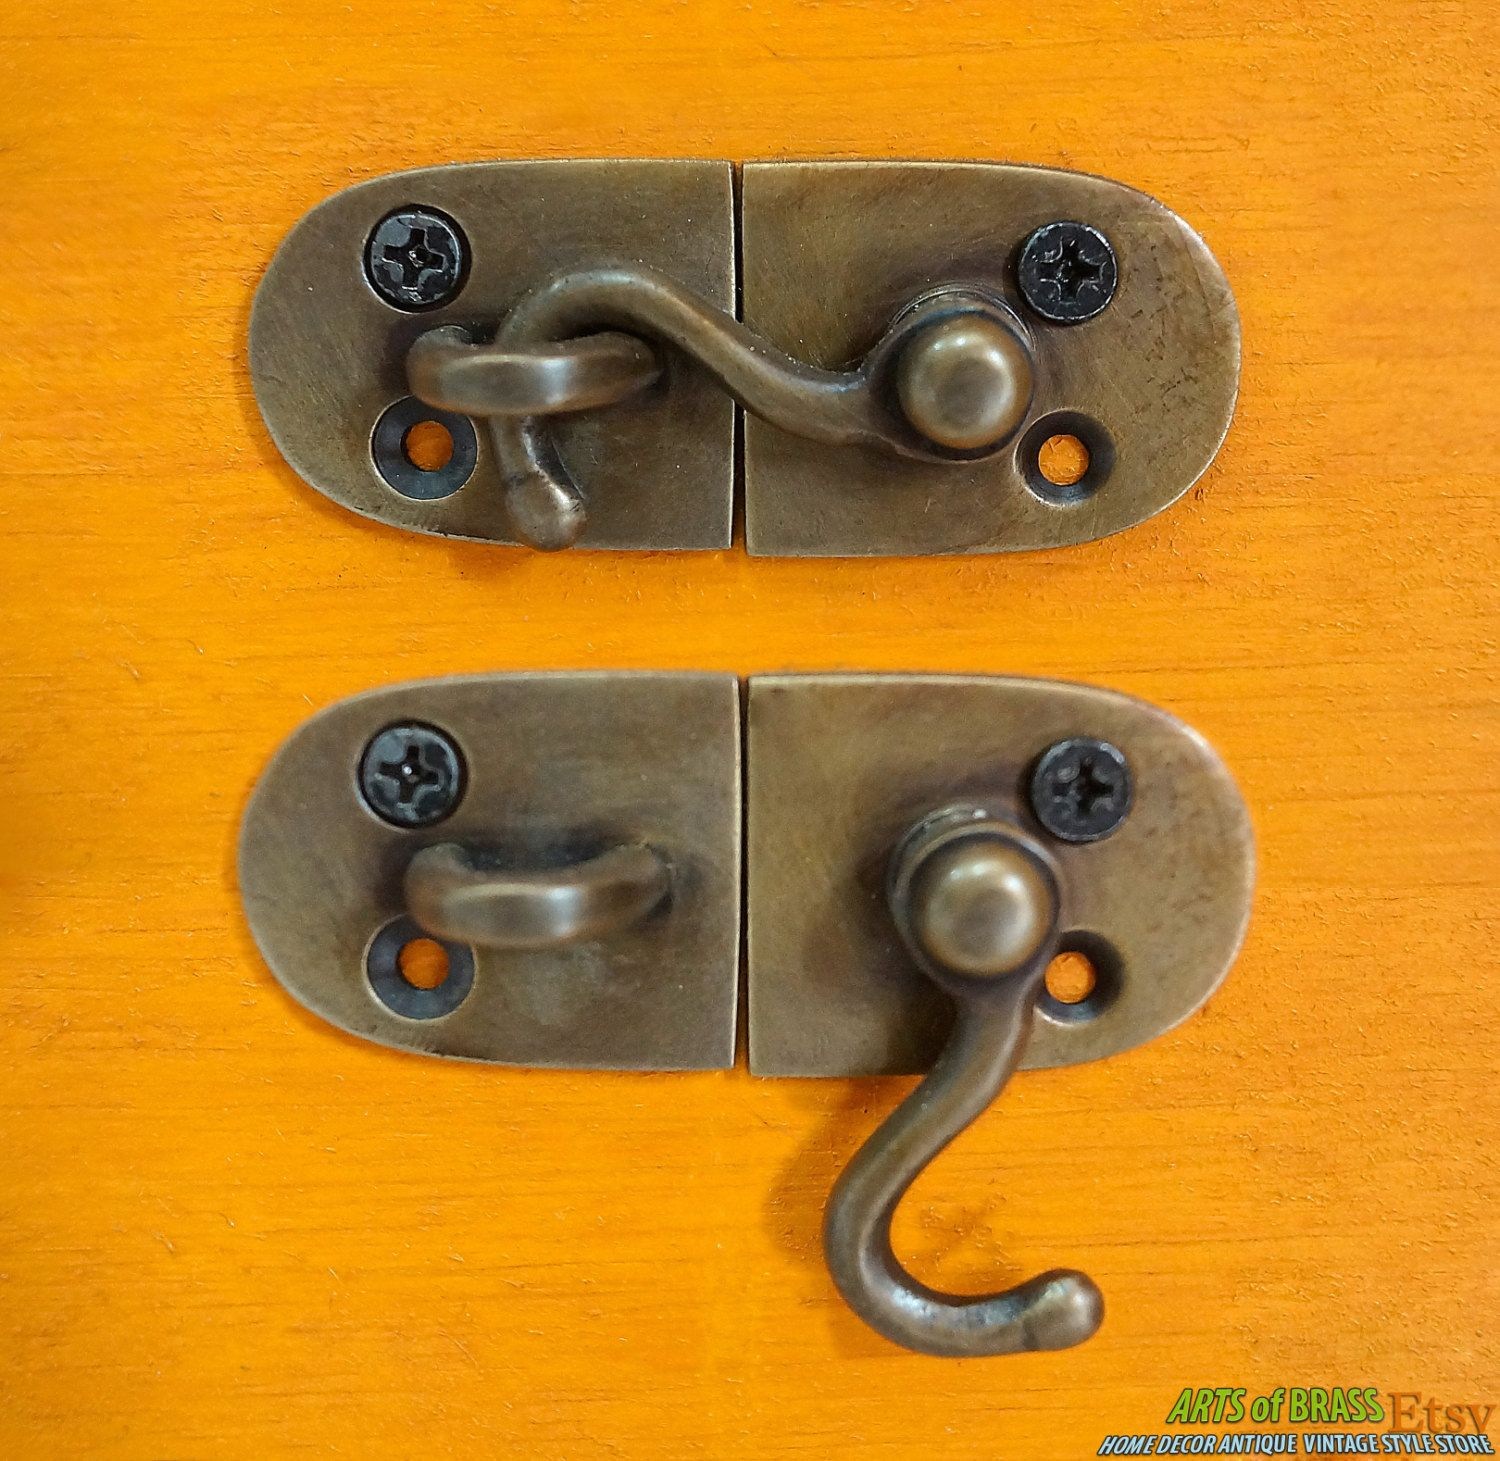 2 51 Inches Lot Of 2 Pcs Door Latch Joint Hook Antique Etsy Door Latch Barn Door Locks Barn Door Latch